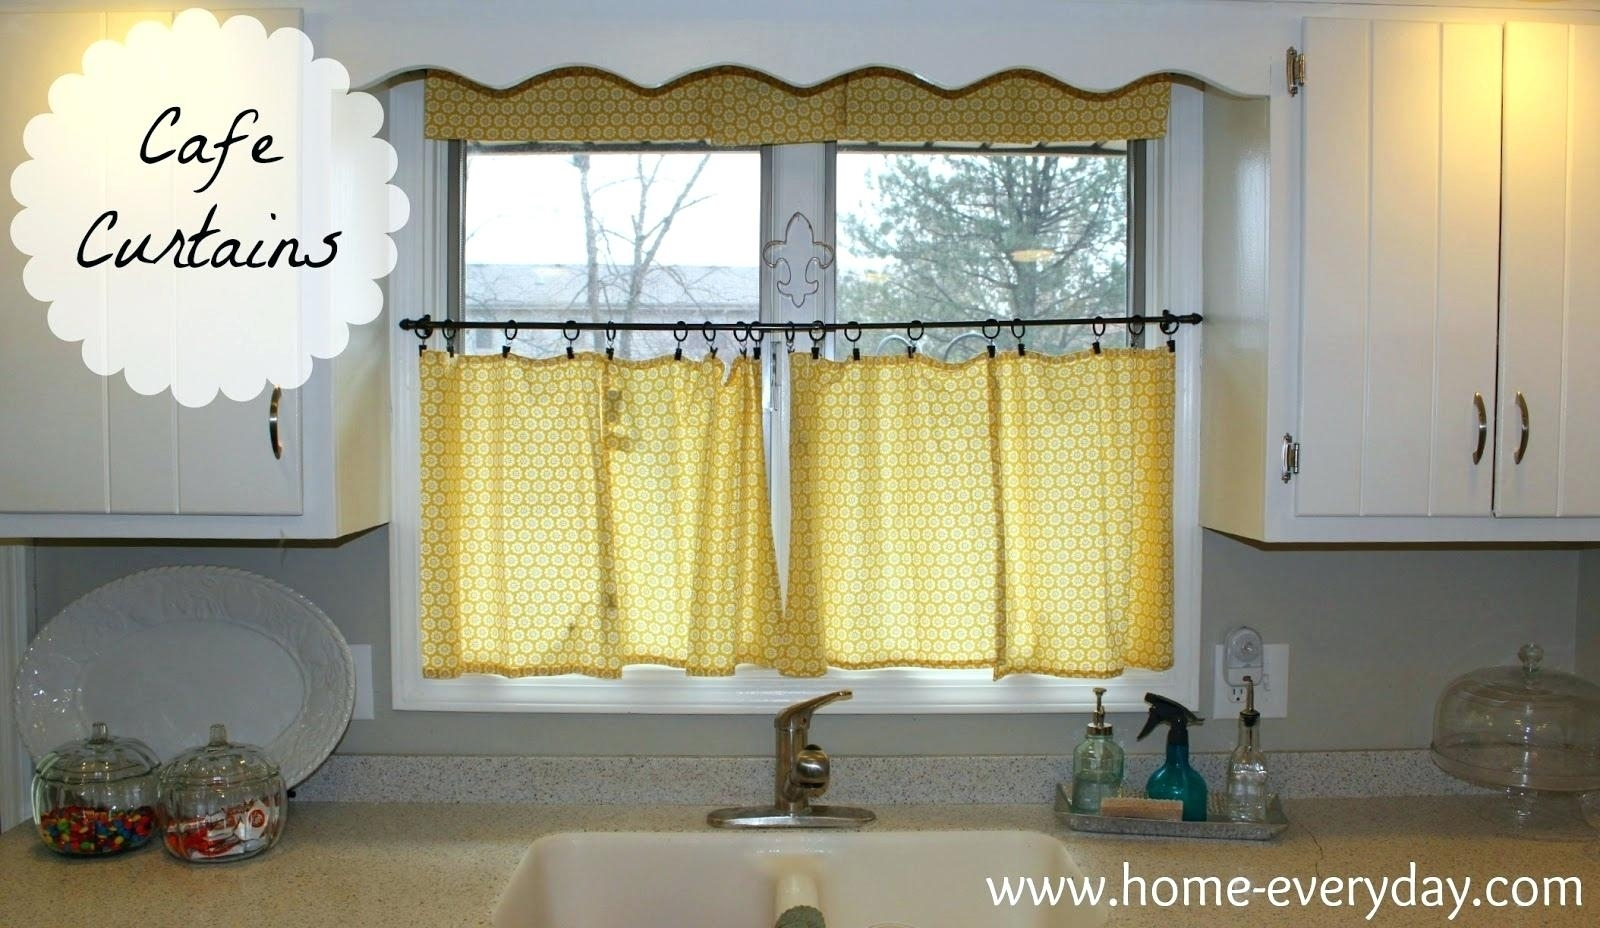 Kitchen Tier Curtains Cafe Curtains Target Kitchen Tier Regarding Coffee Embroidered Kitchen Curtain Tier Sets (Gallery 20 of 20)